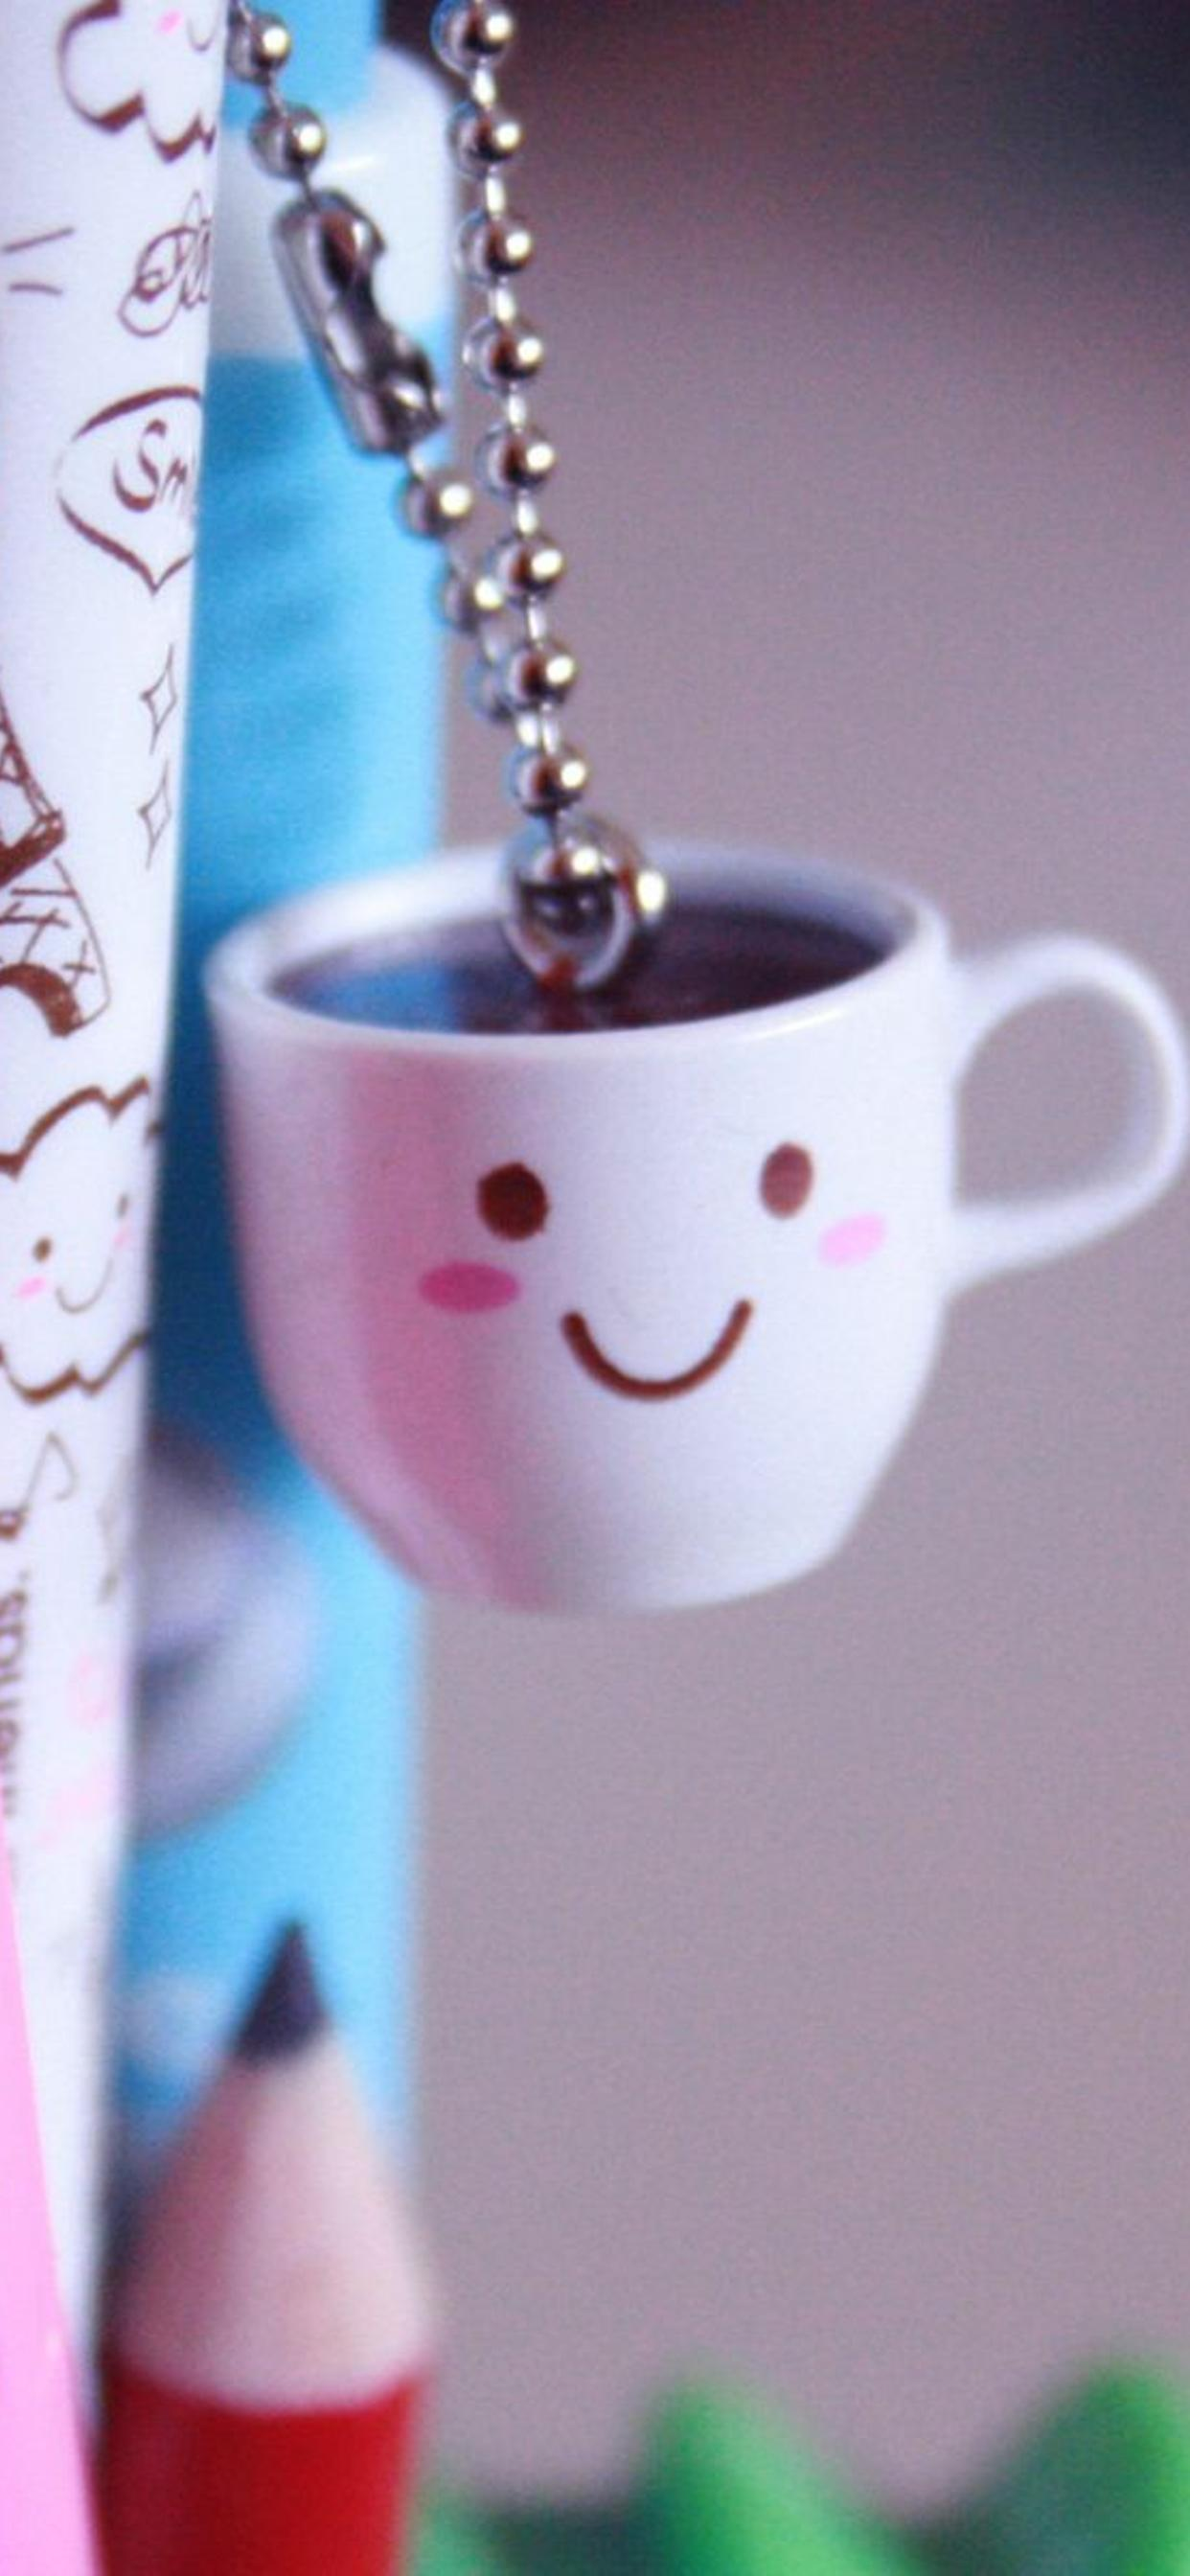 Cute Small Coffee Cup And Crayons Hd Wallpaper